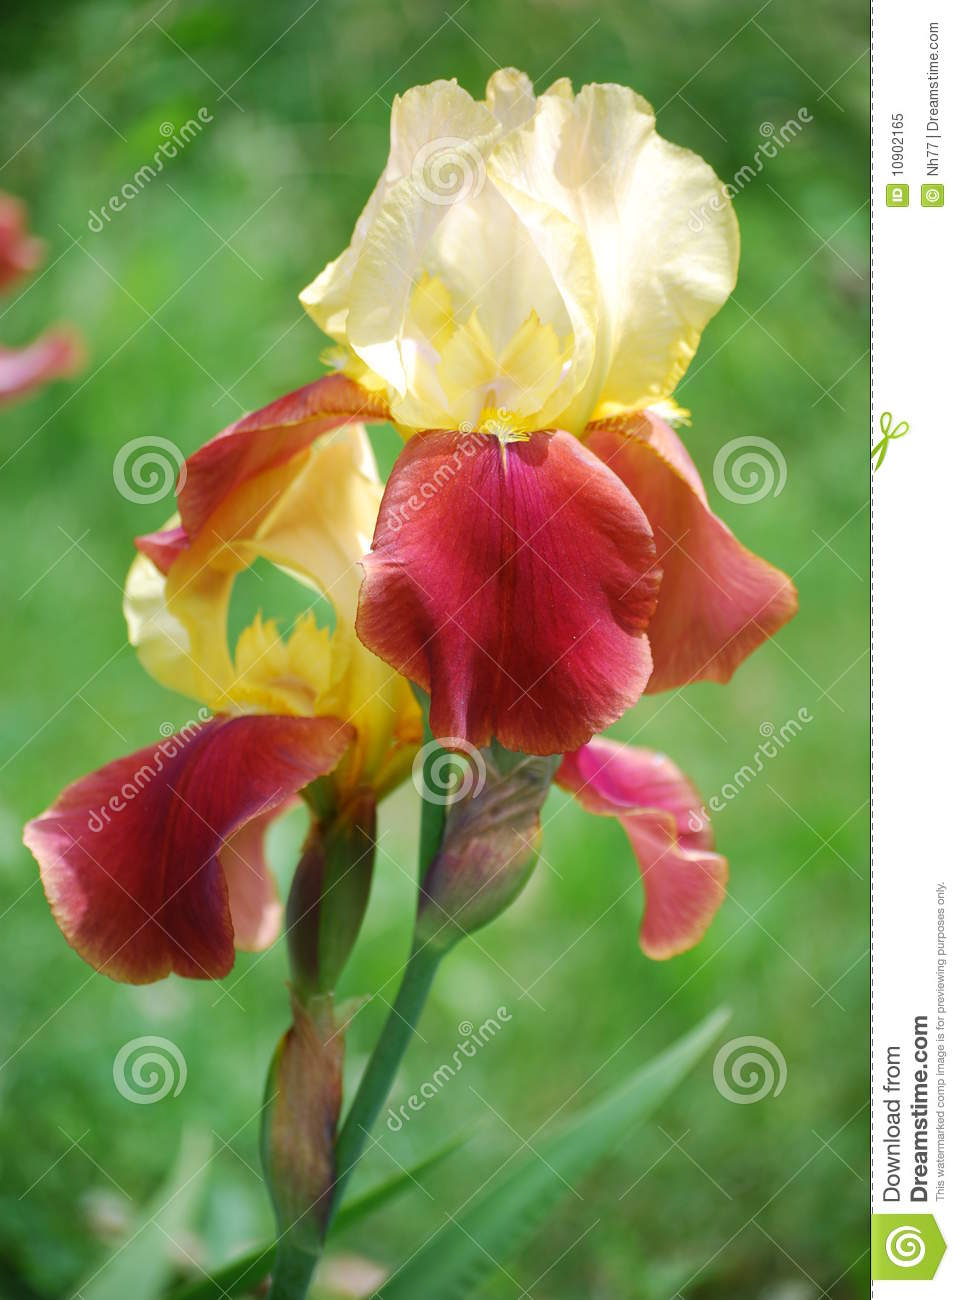 Download Red iris stock image. Image of background, beauty, elegant - 10902165